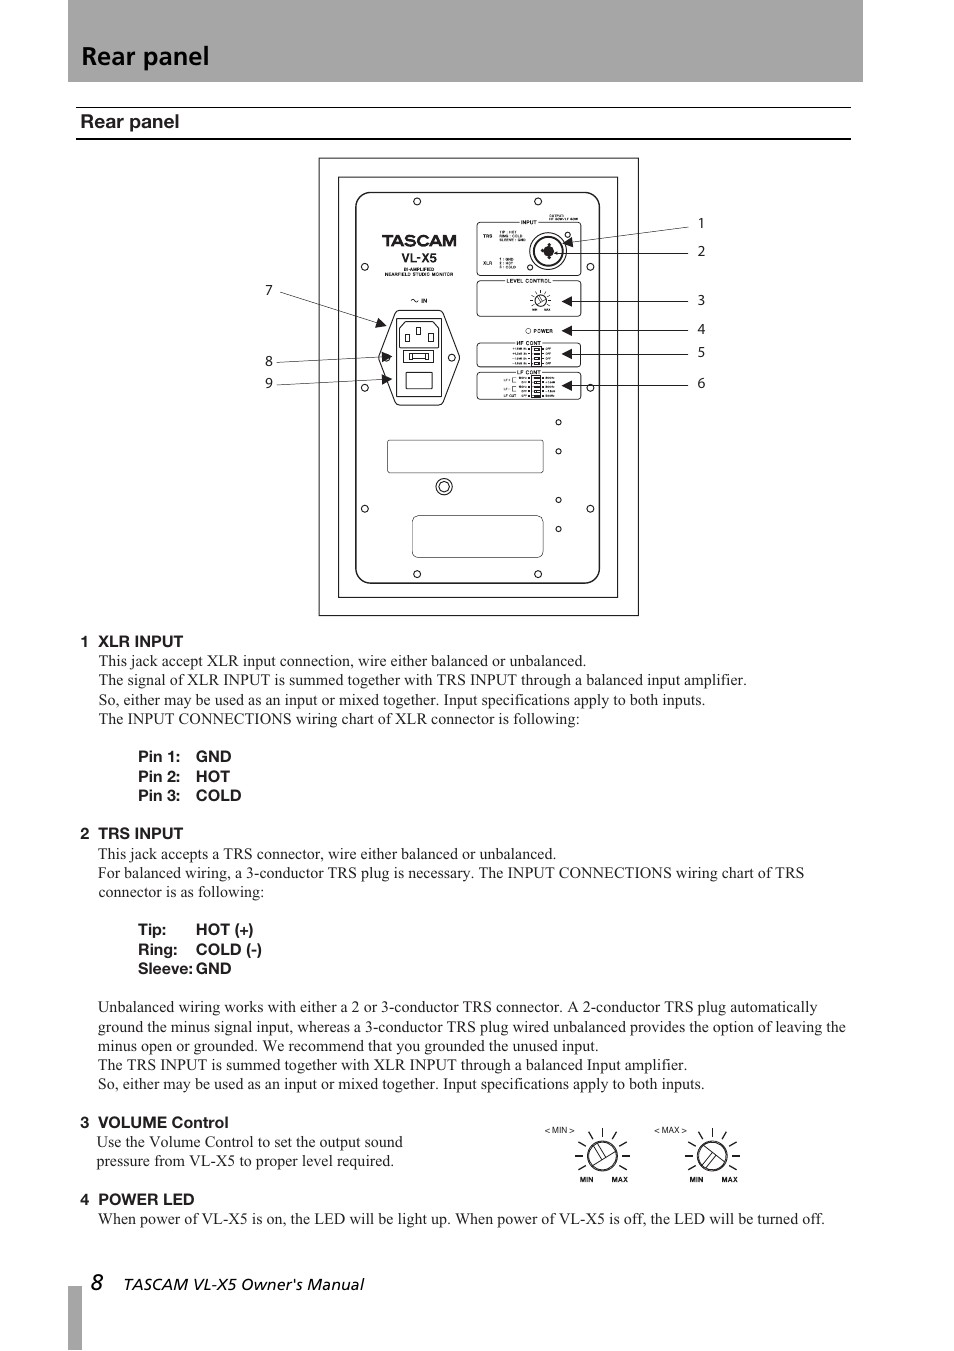 Rear Panel Tascam Vl X5 User Manual Page 8 12 Trs Connector Wiring Diagram